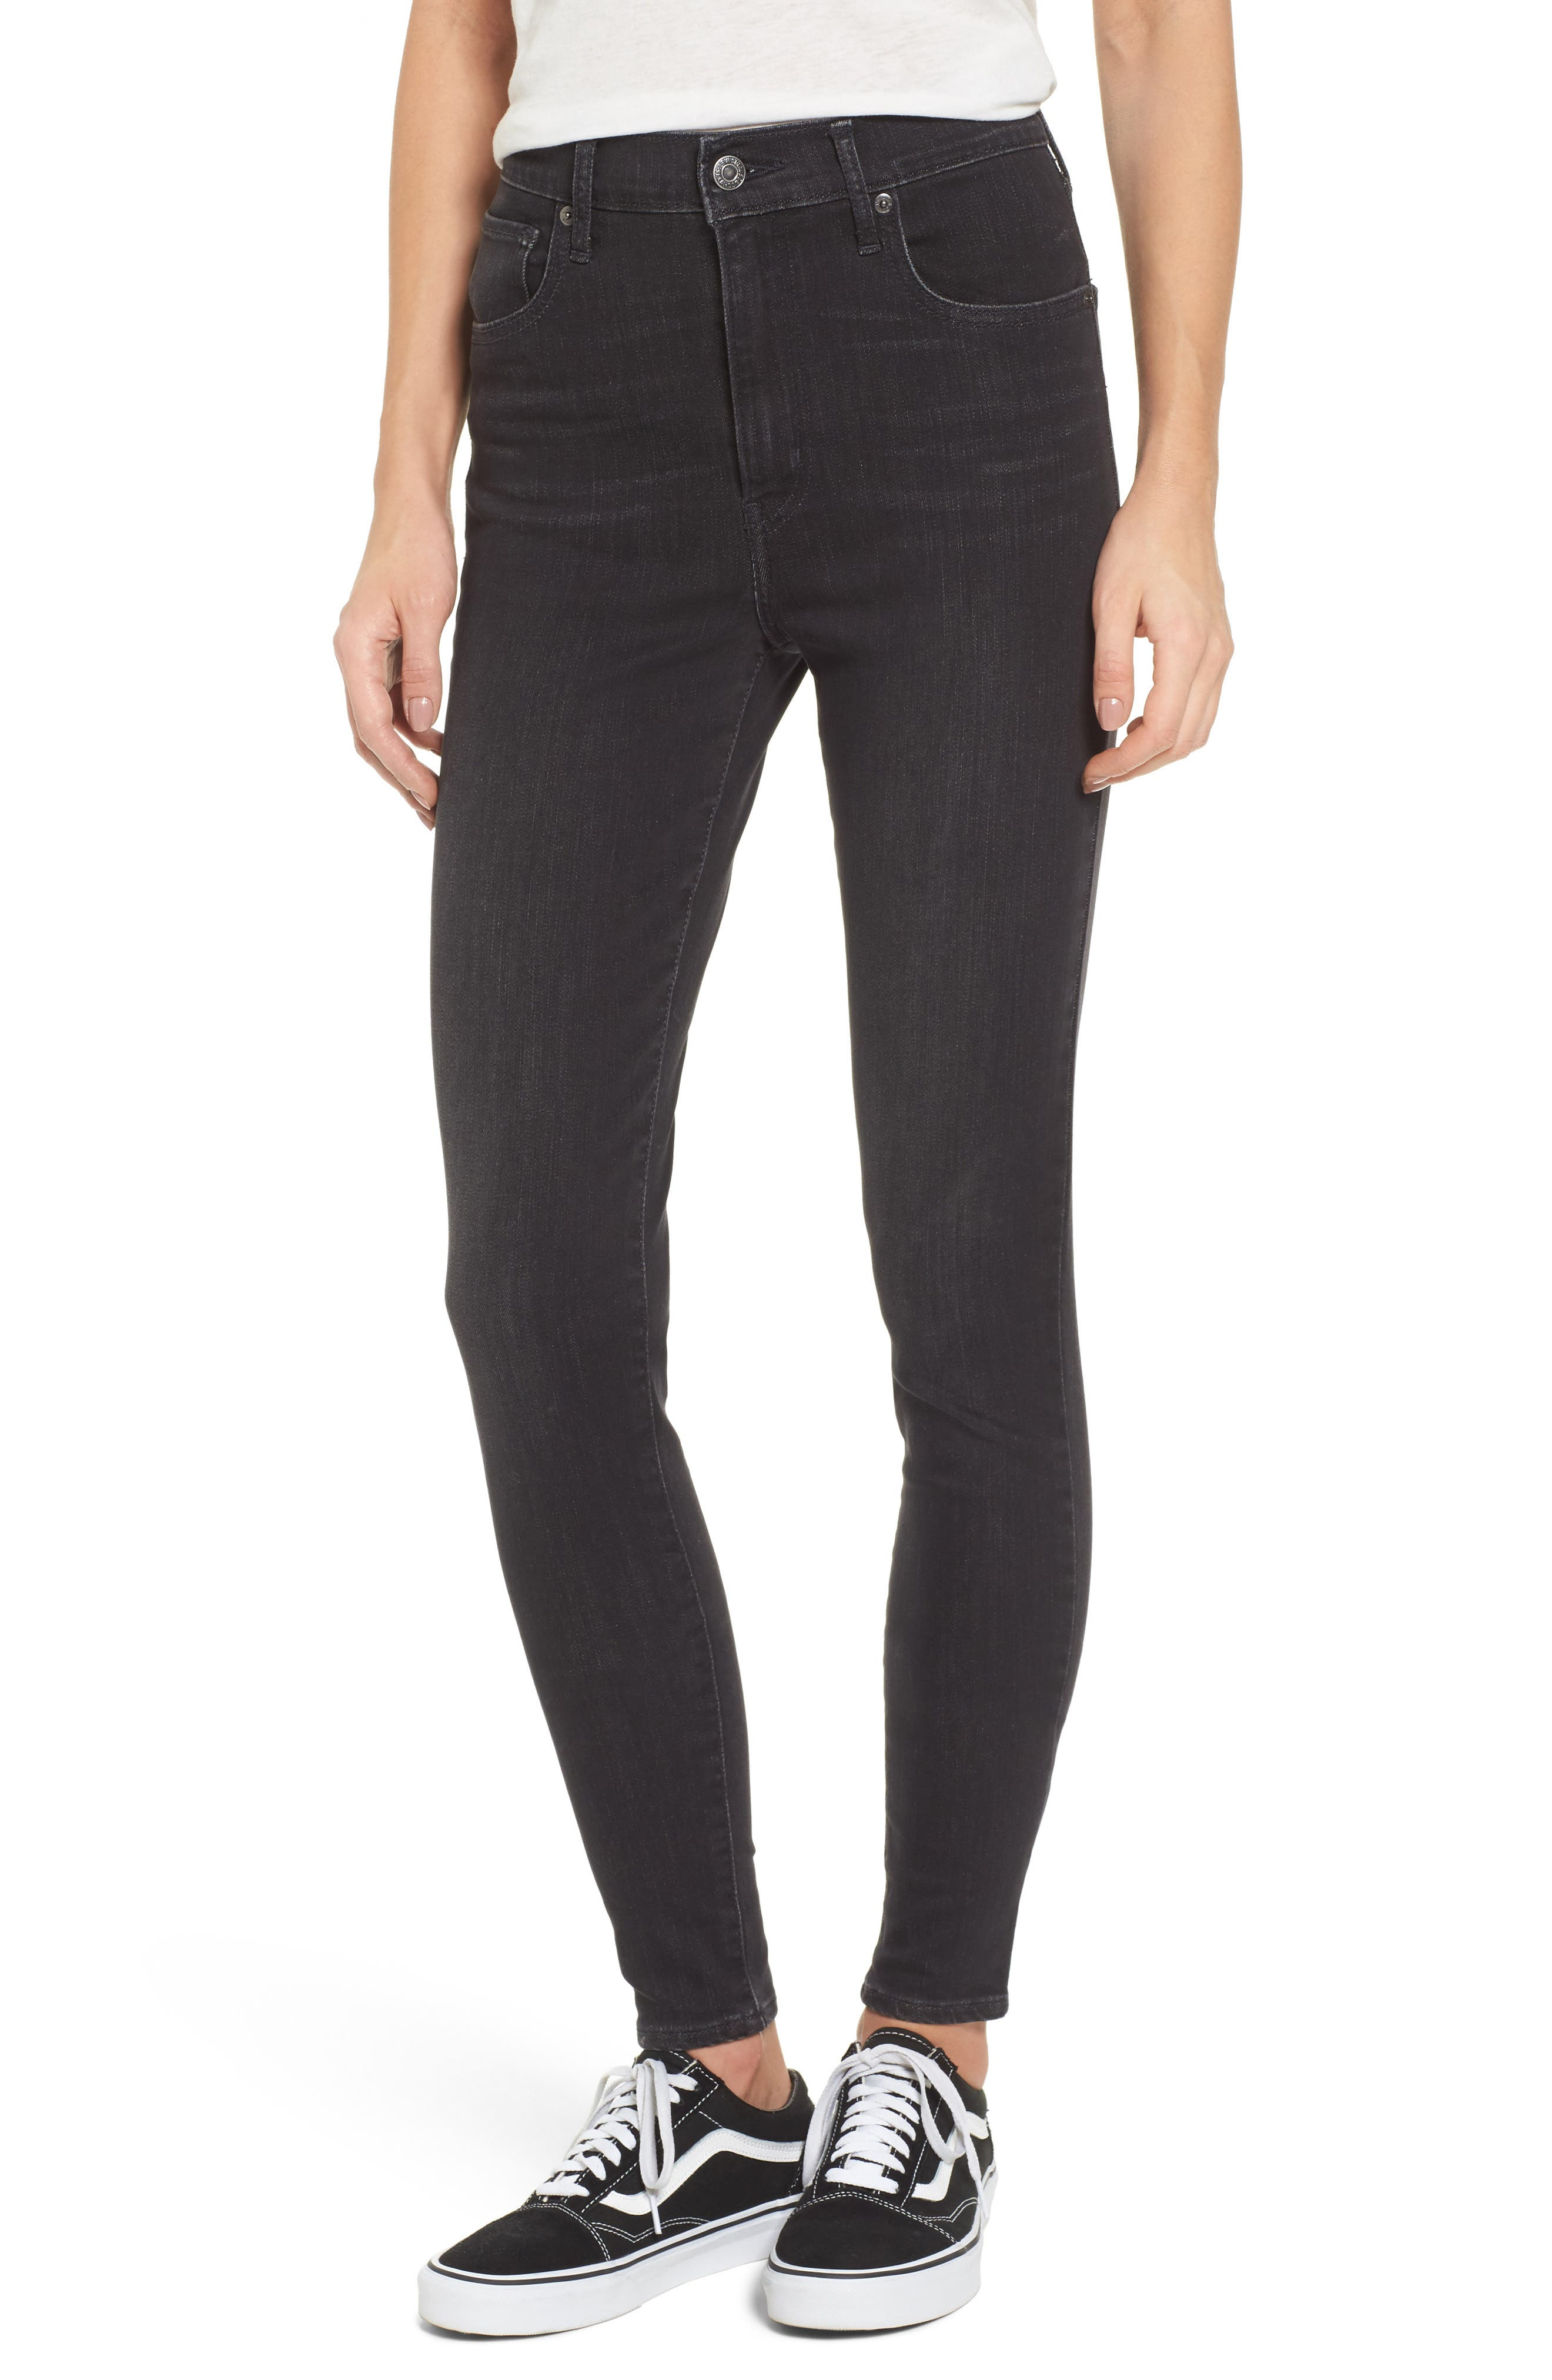 Mile High High Rise Skinny Jeans,                             Main thumbnail 1, color,                             Faded Ink